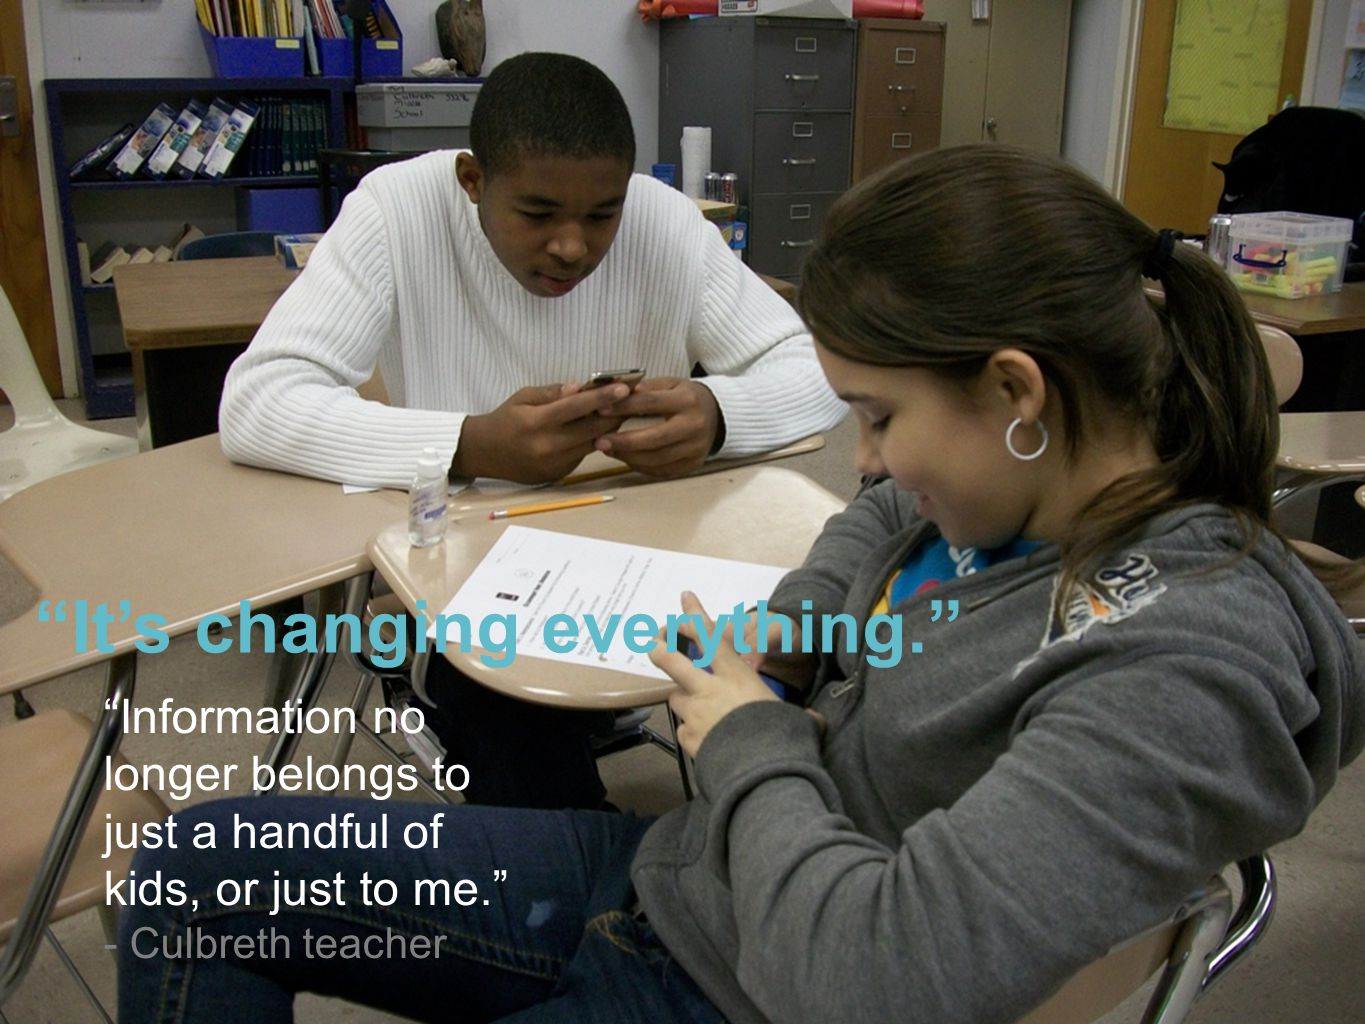 Information no longer belongs to just a handful of kids, or just to me. - Culbreth teacher Its changing everything.